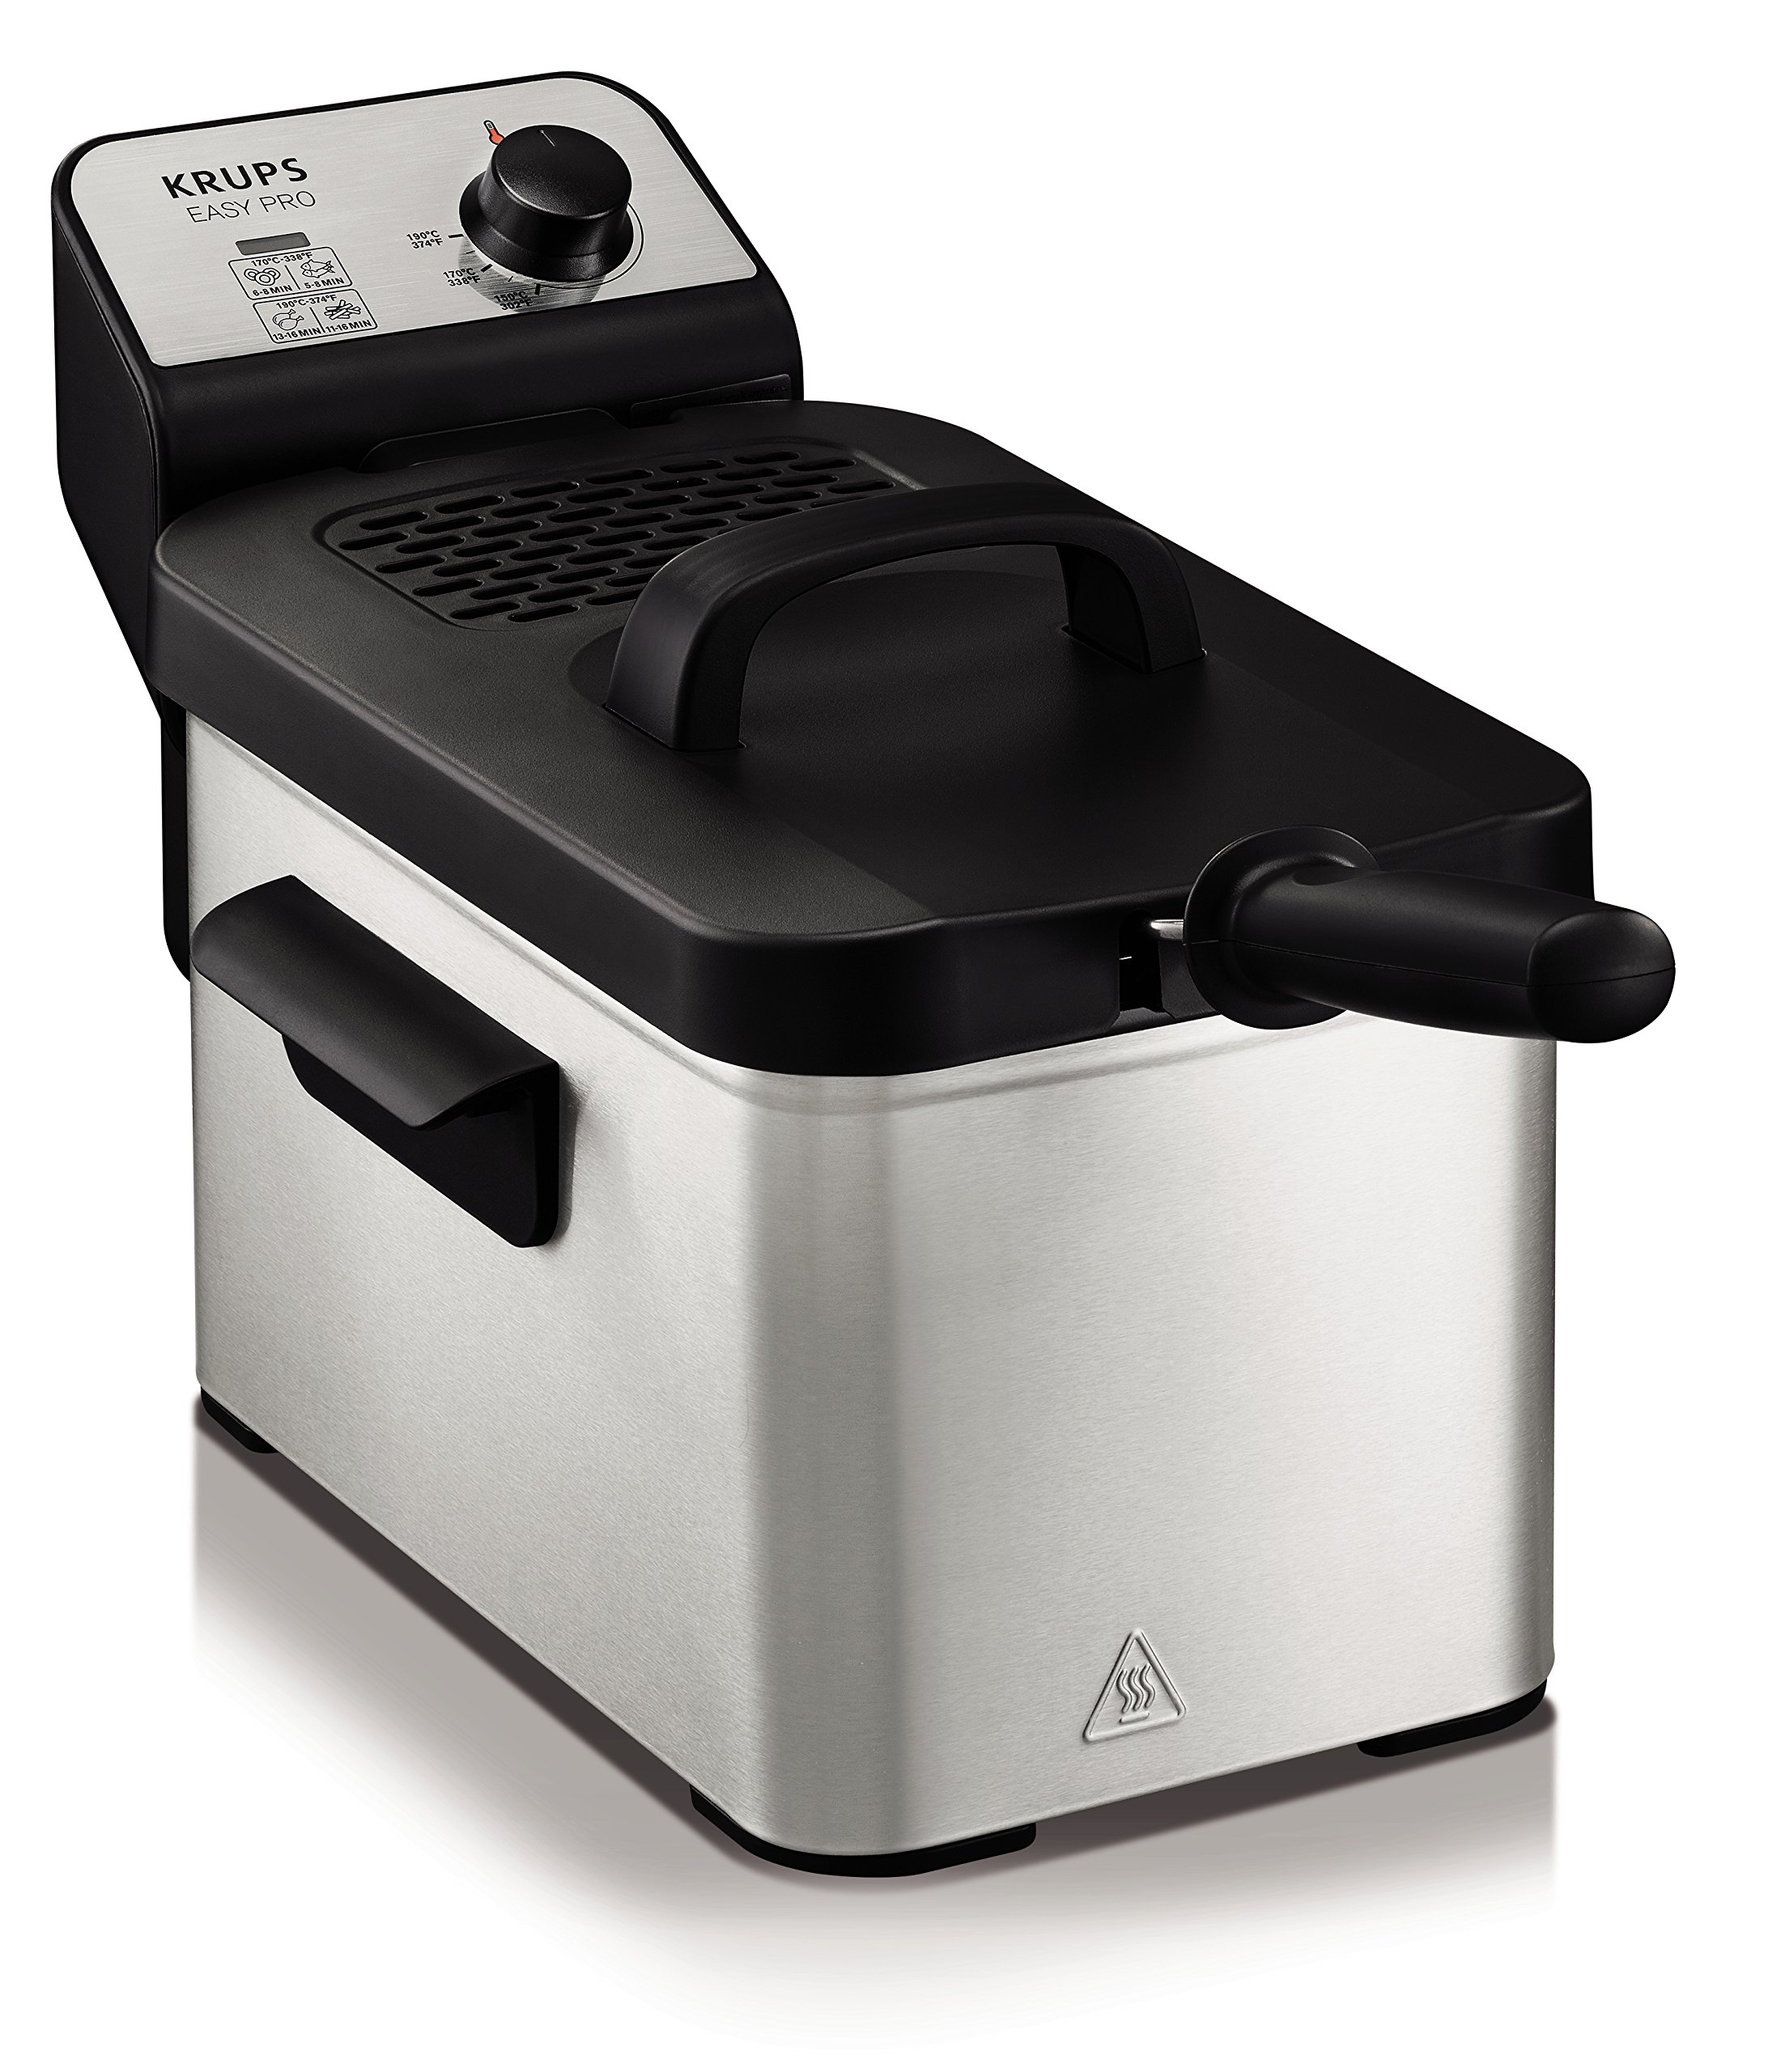 Krups KJ33 Easy Pro 2.5 L Deep-Fryer with Snack Accessory with Food Presets and Timer, Stainless Steel